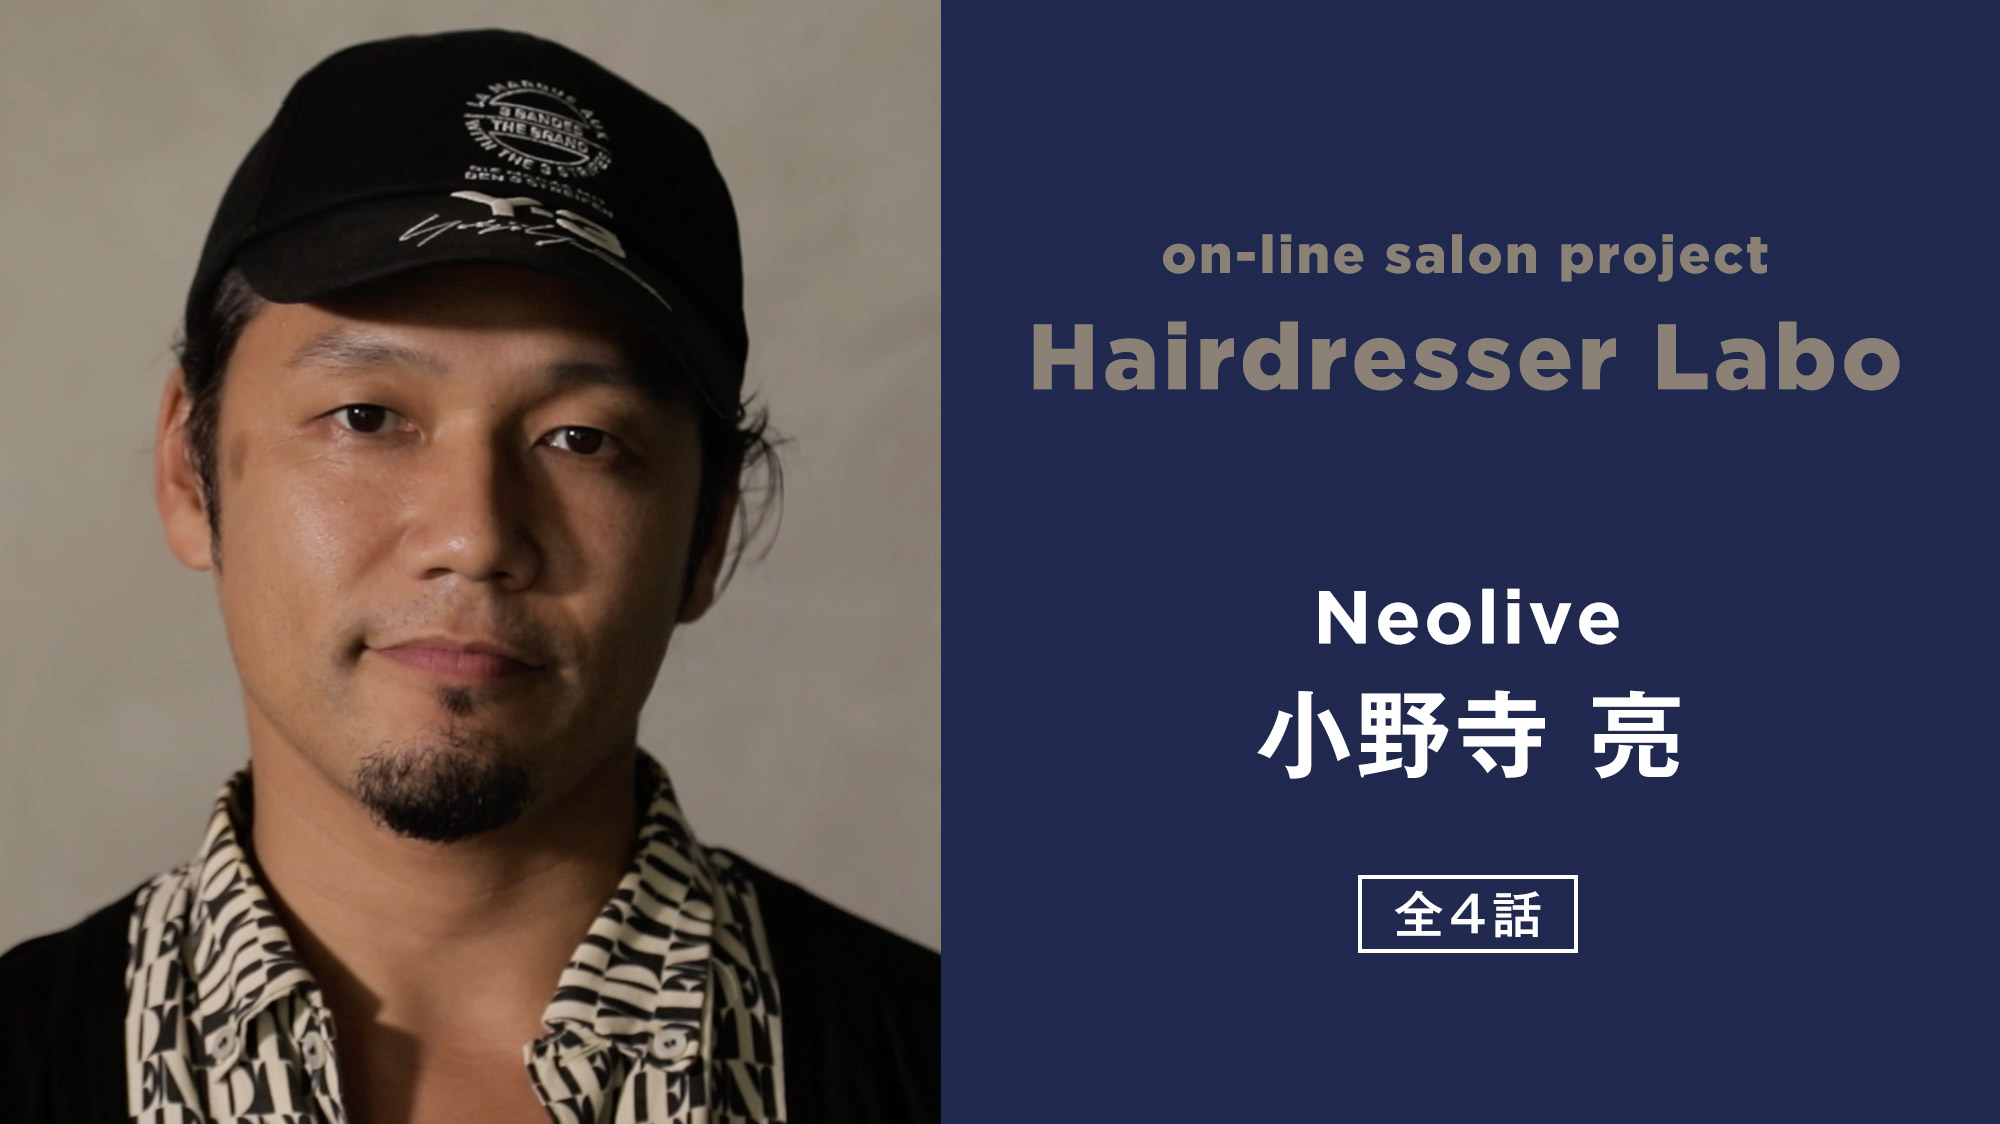 on-line salon project Hairdresser Labo『小野寺 亮』 全4話